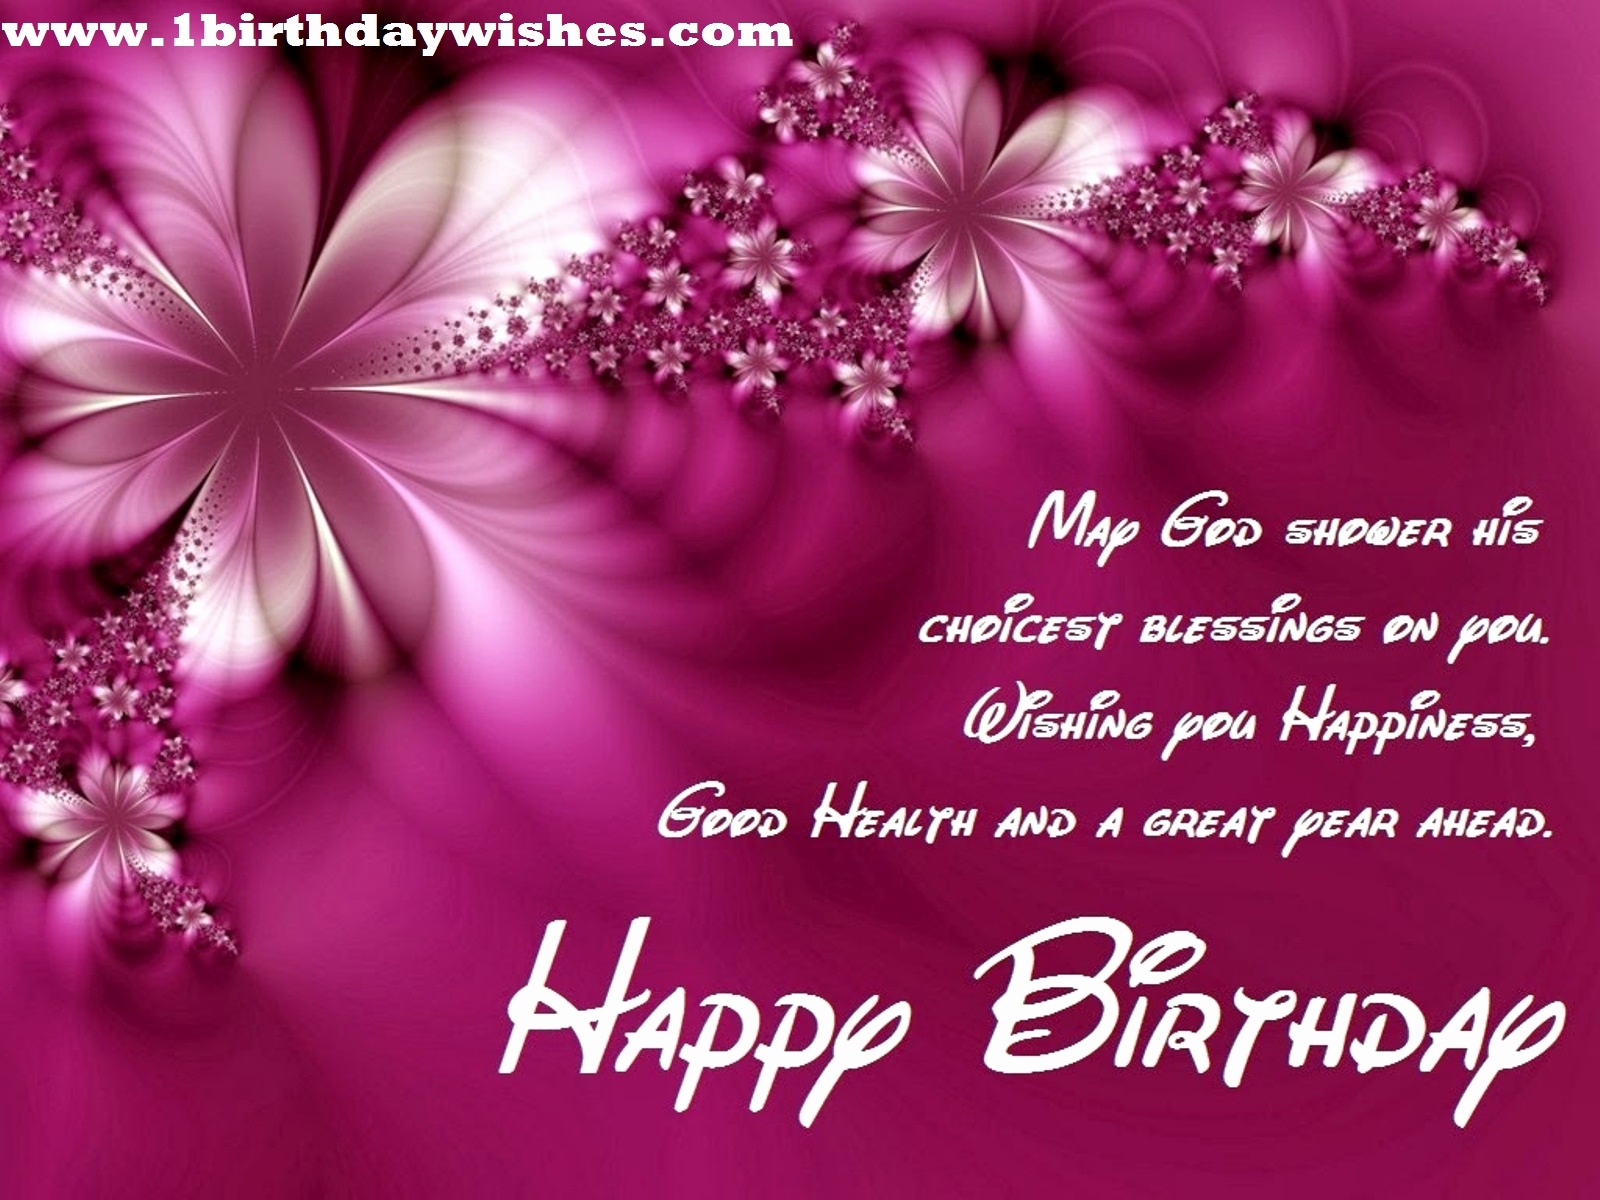 send birthday card by text message ; send-birthday-card-by-text-message-unique-best-happy-birthday-wishes-for-all-birthday-wishes-of-send-birthday-card-by-text-message